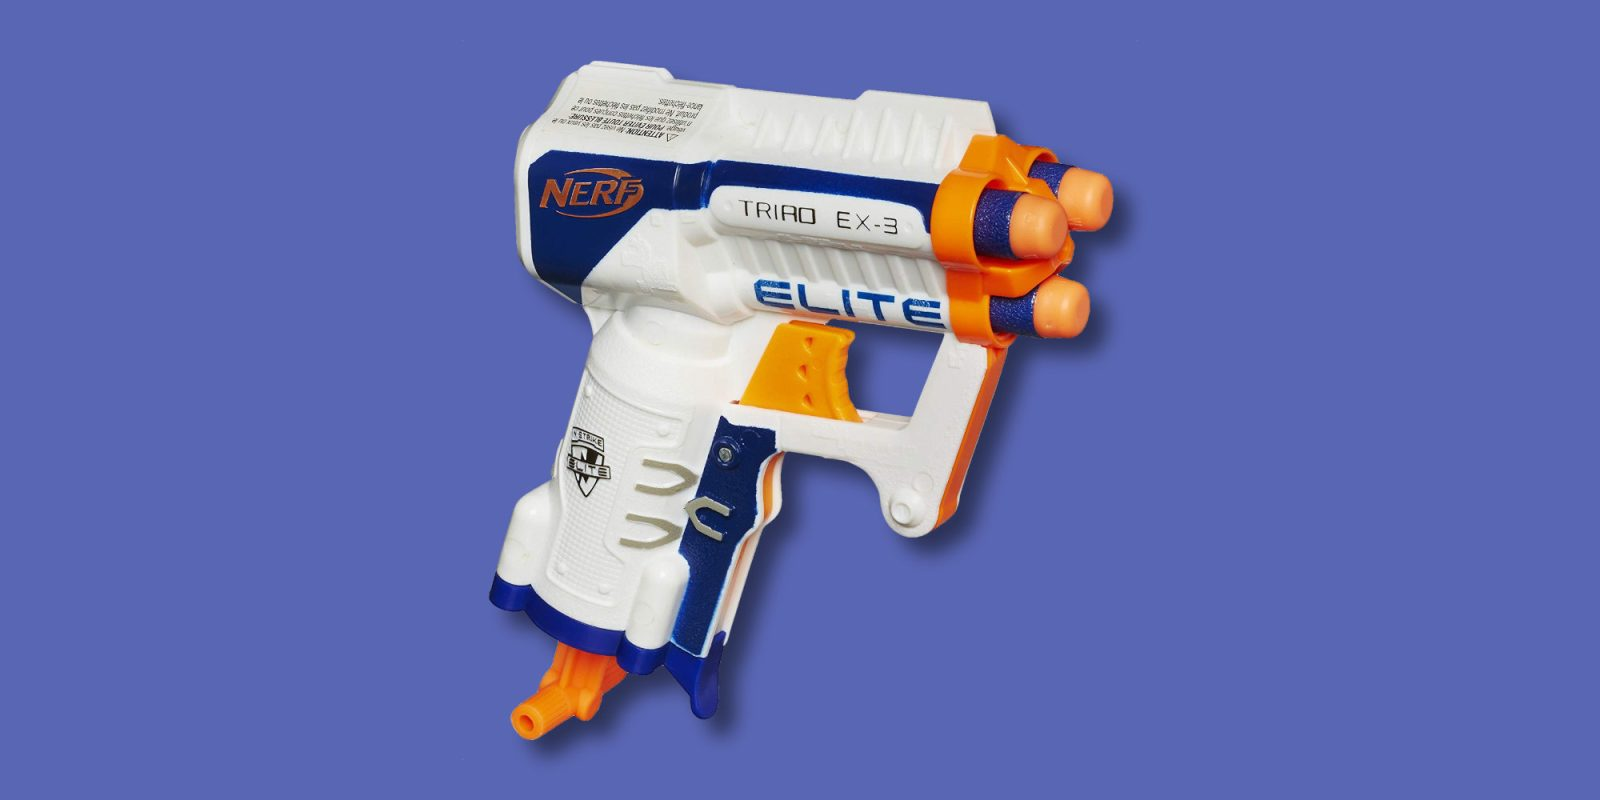 This $3.50 NERF blaster is a must for dart battles (40% off)